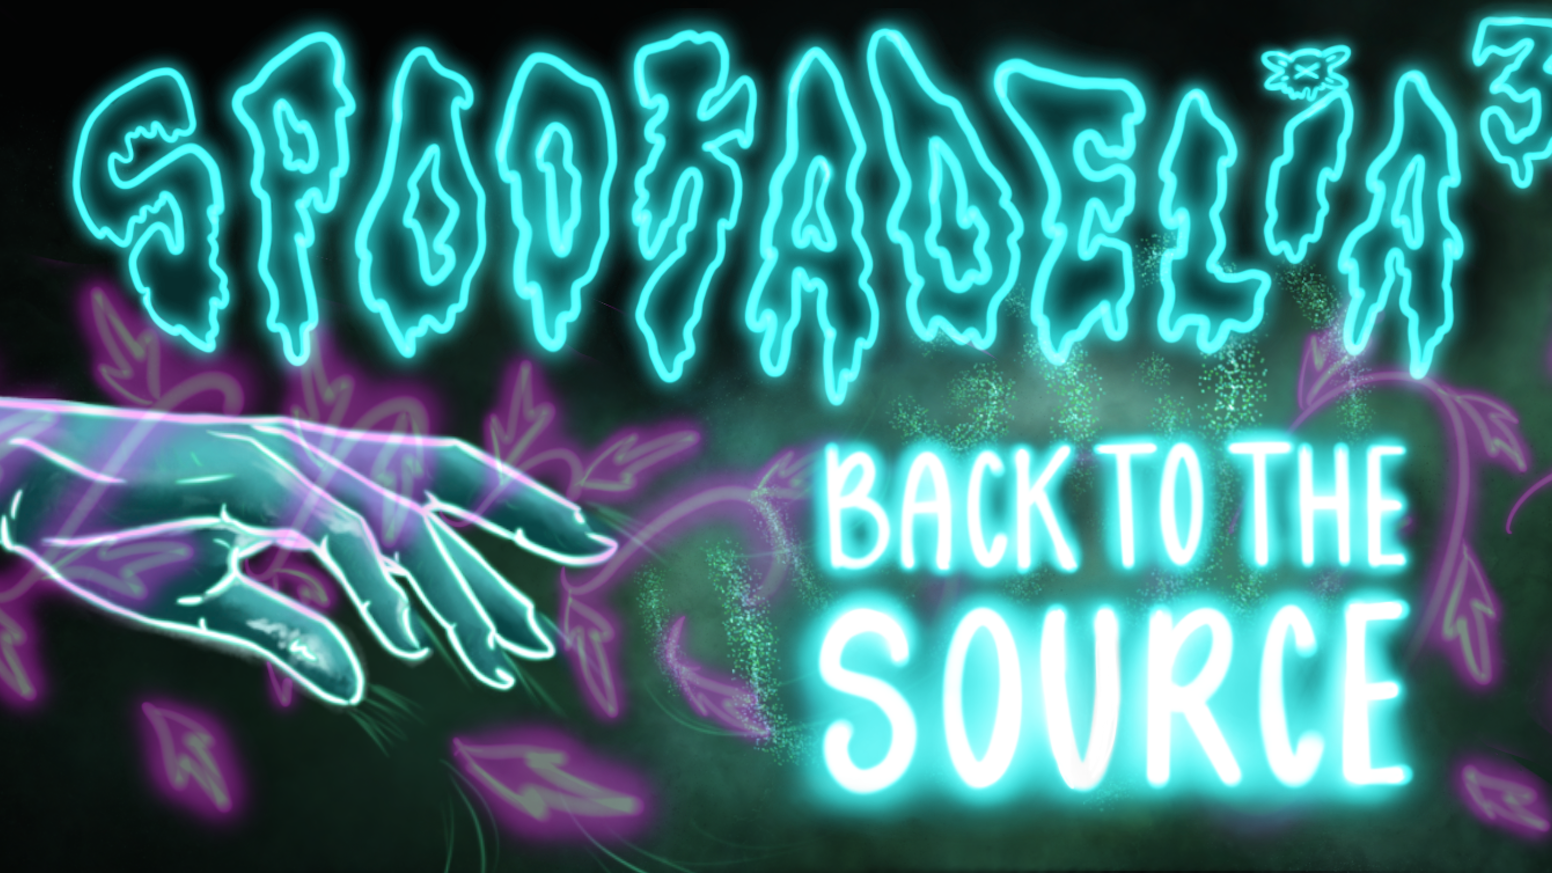 Spookadelia 3: Back to the Source is a psychedelic immersive art and theatrical experience presented by Spectra Art Space.